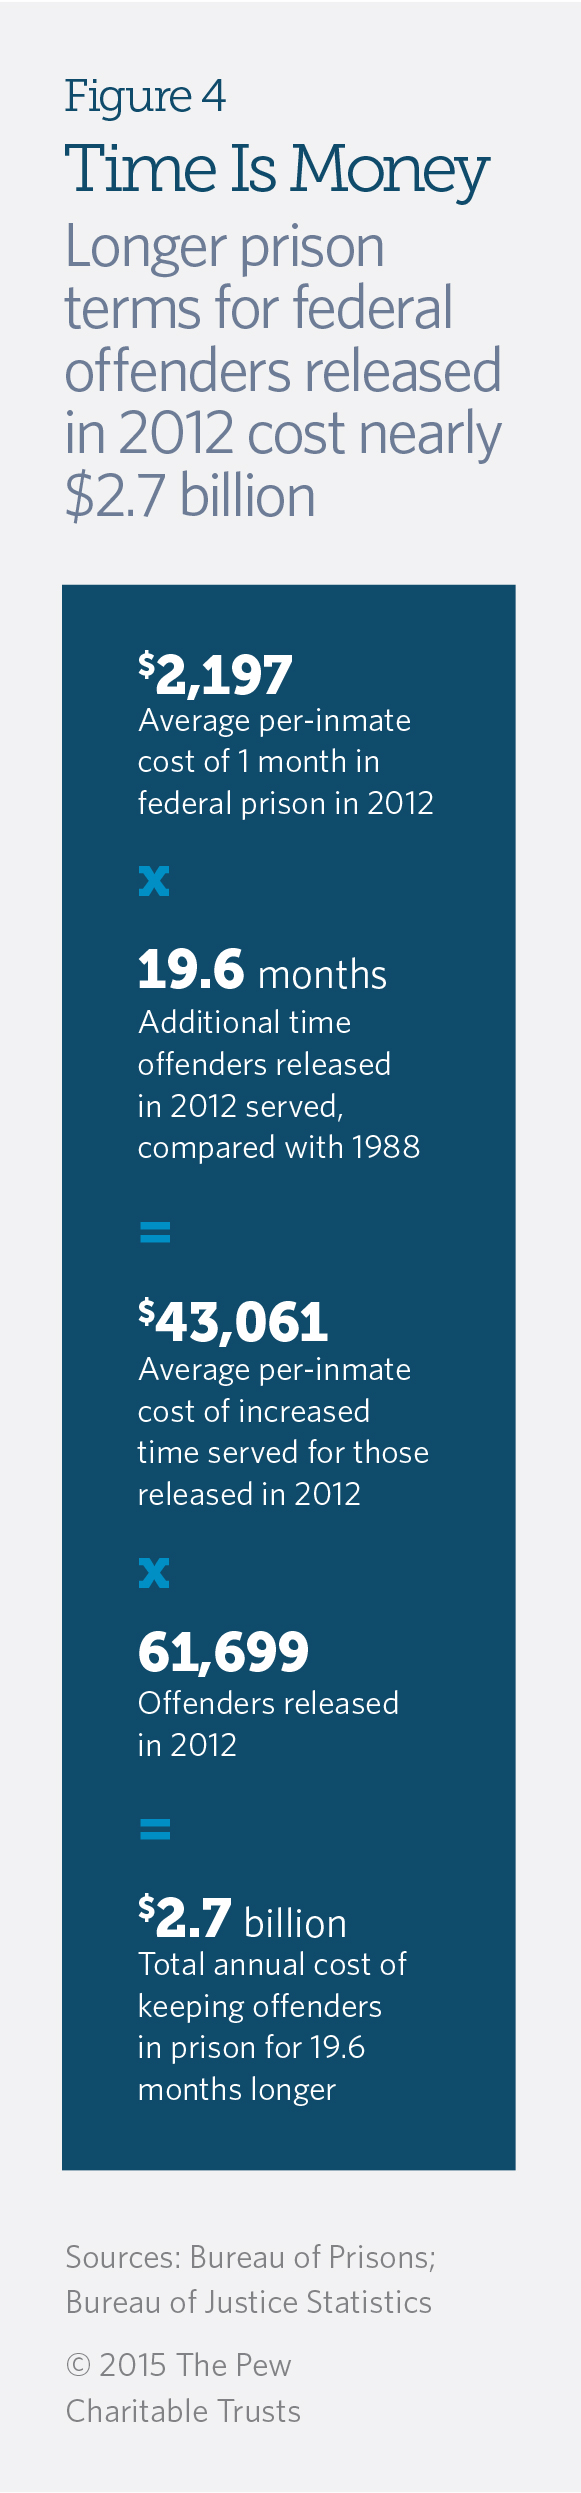 Prison Time Surges for Federal Inmates | The Pew Charitable